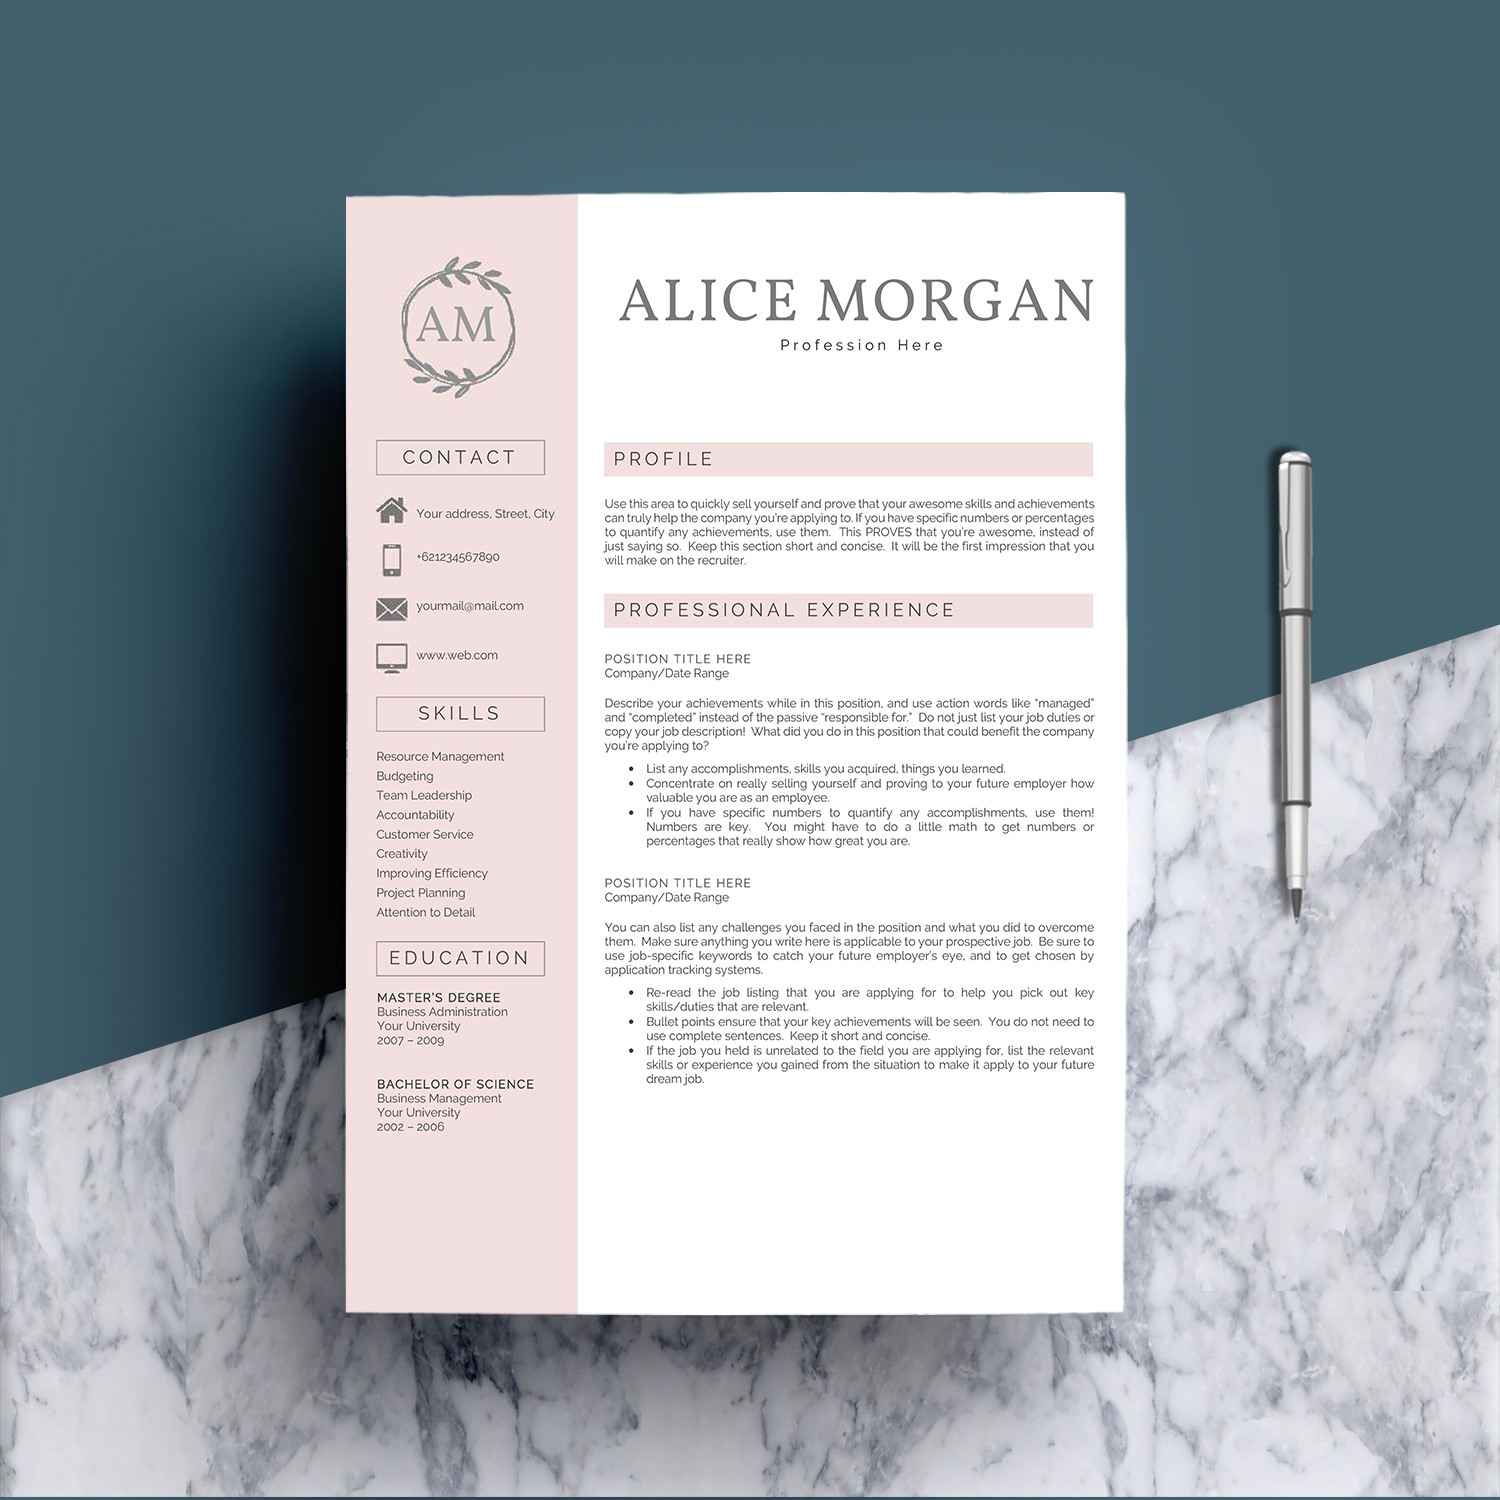 Professional Creative Resume Template - Alice Morgan example image 2